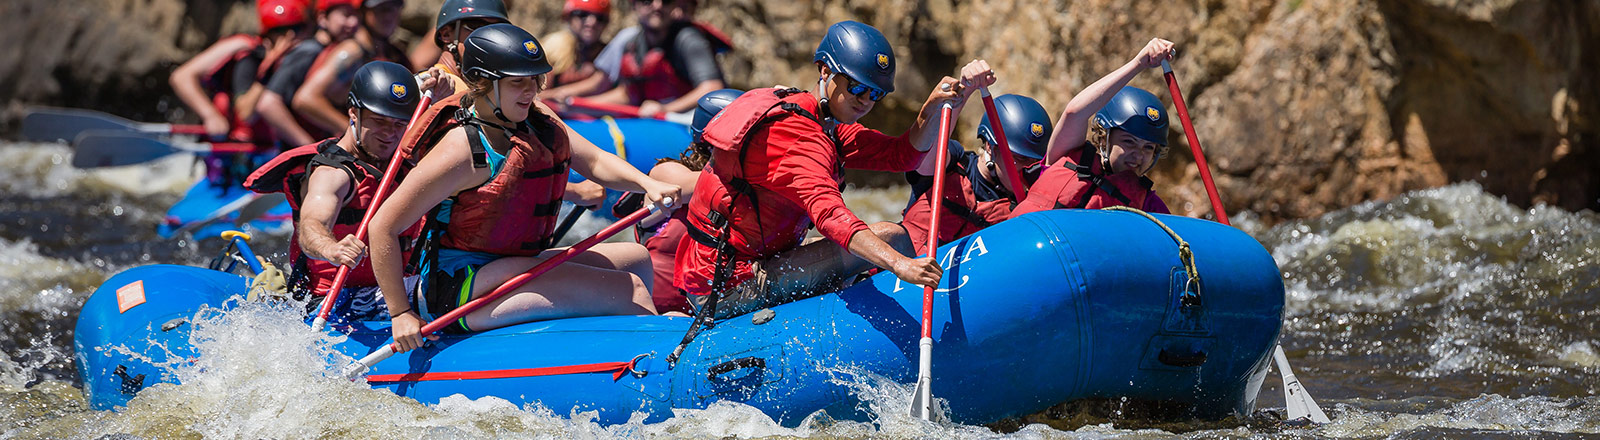 Outdoor Pursuits group white water rafting